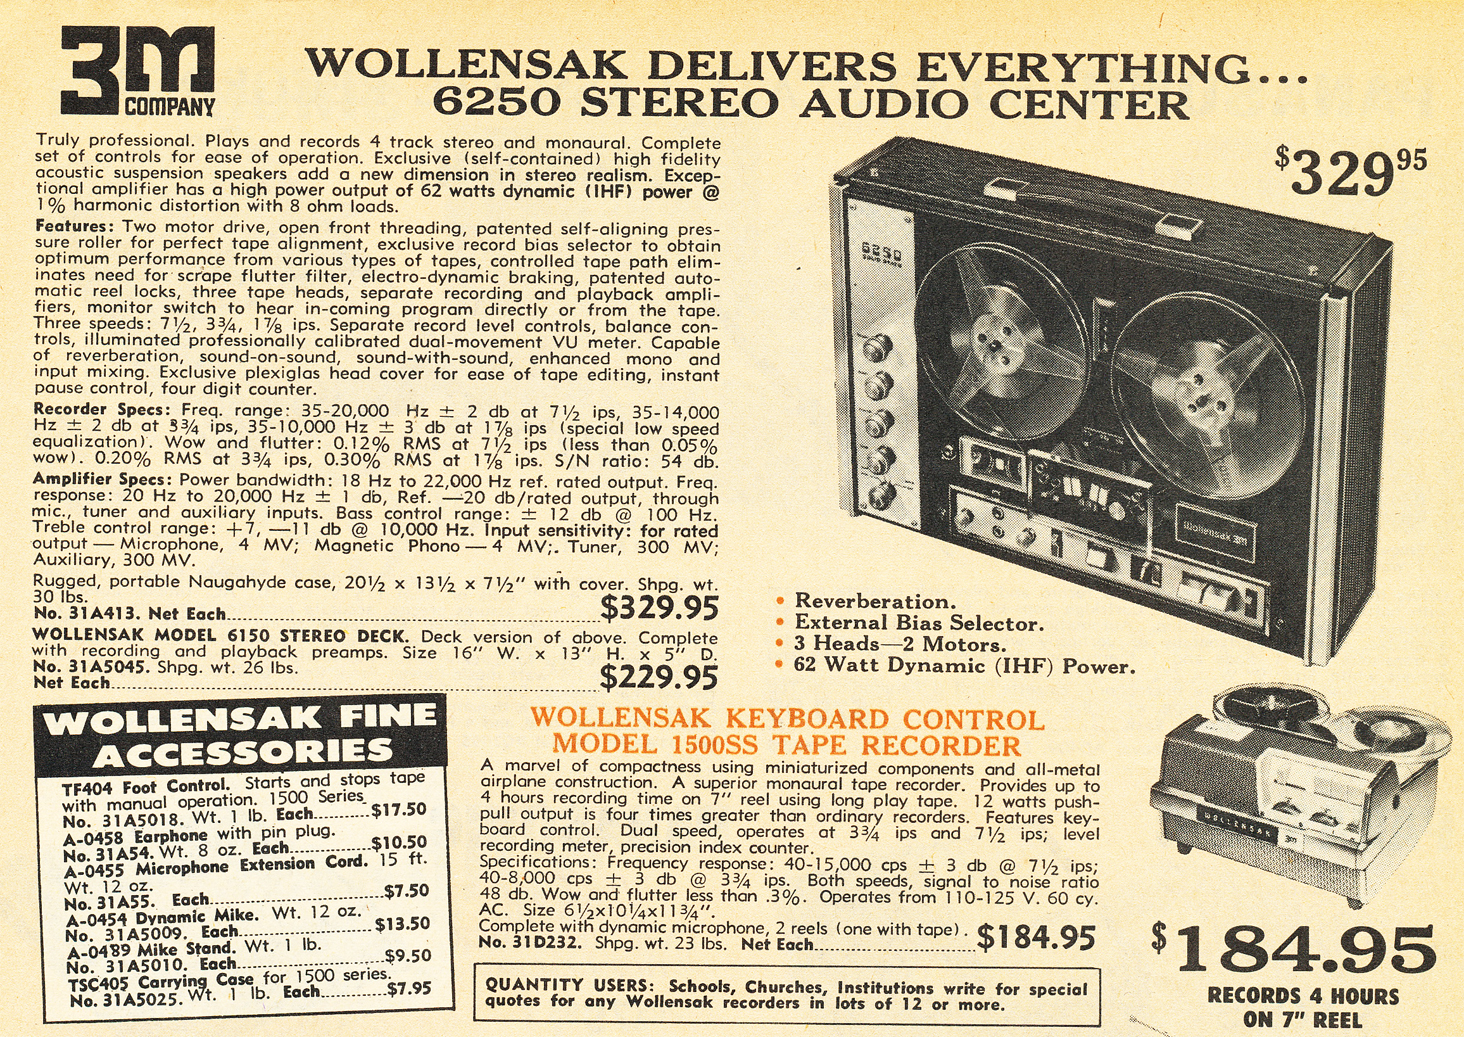 1970 ad for the Wollensak 6250 reel to reel tape recorder in the Reel2ReelTexas.com vintage recording collection